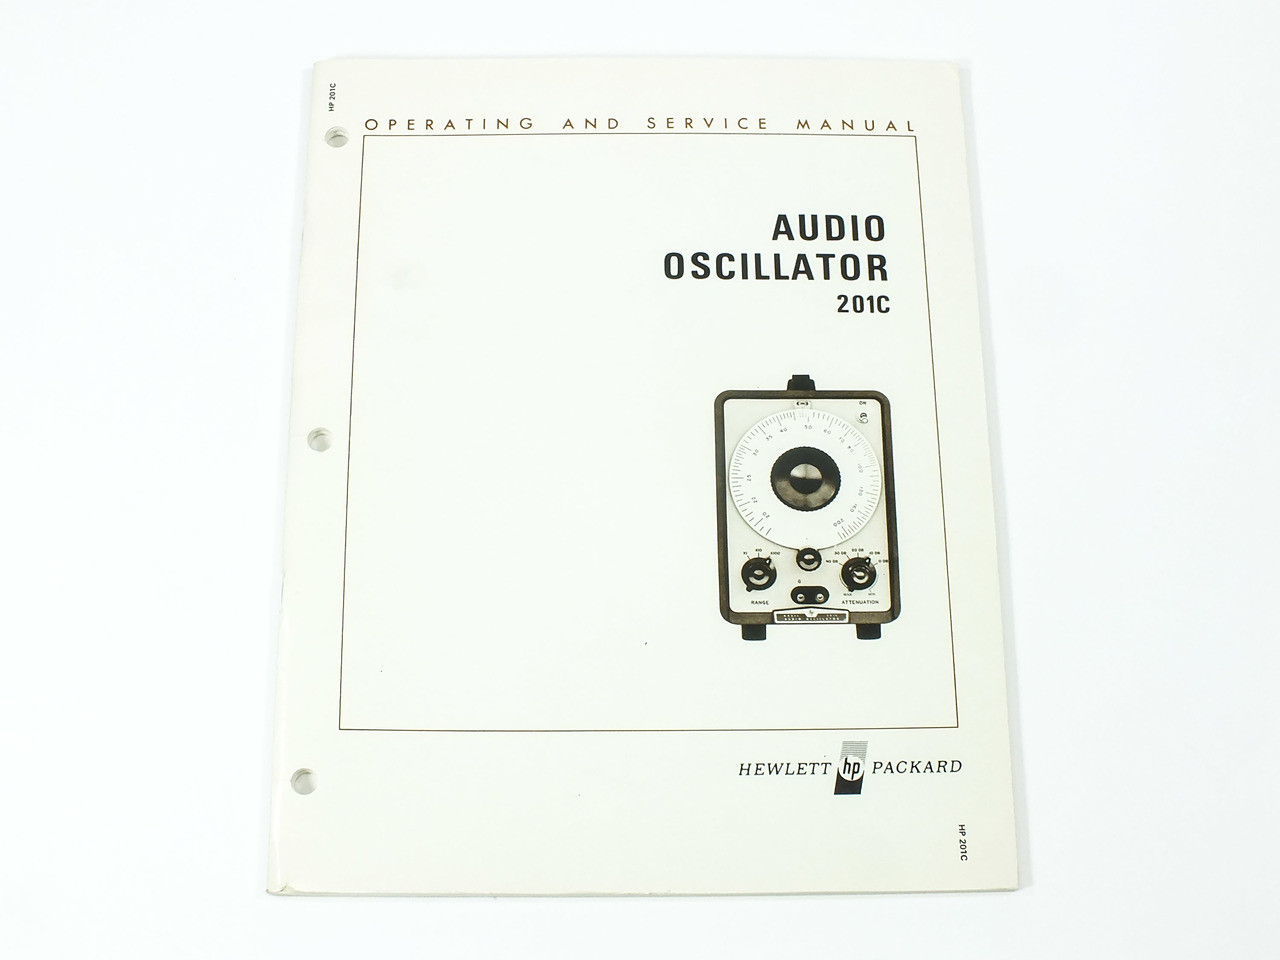 HP 201C Audio Oscillator Operating and Service Manual